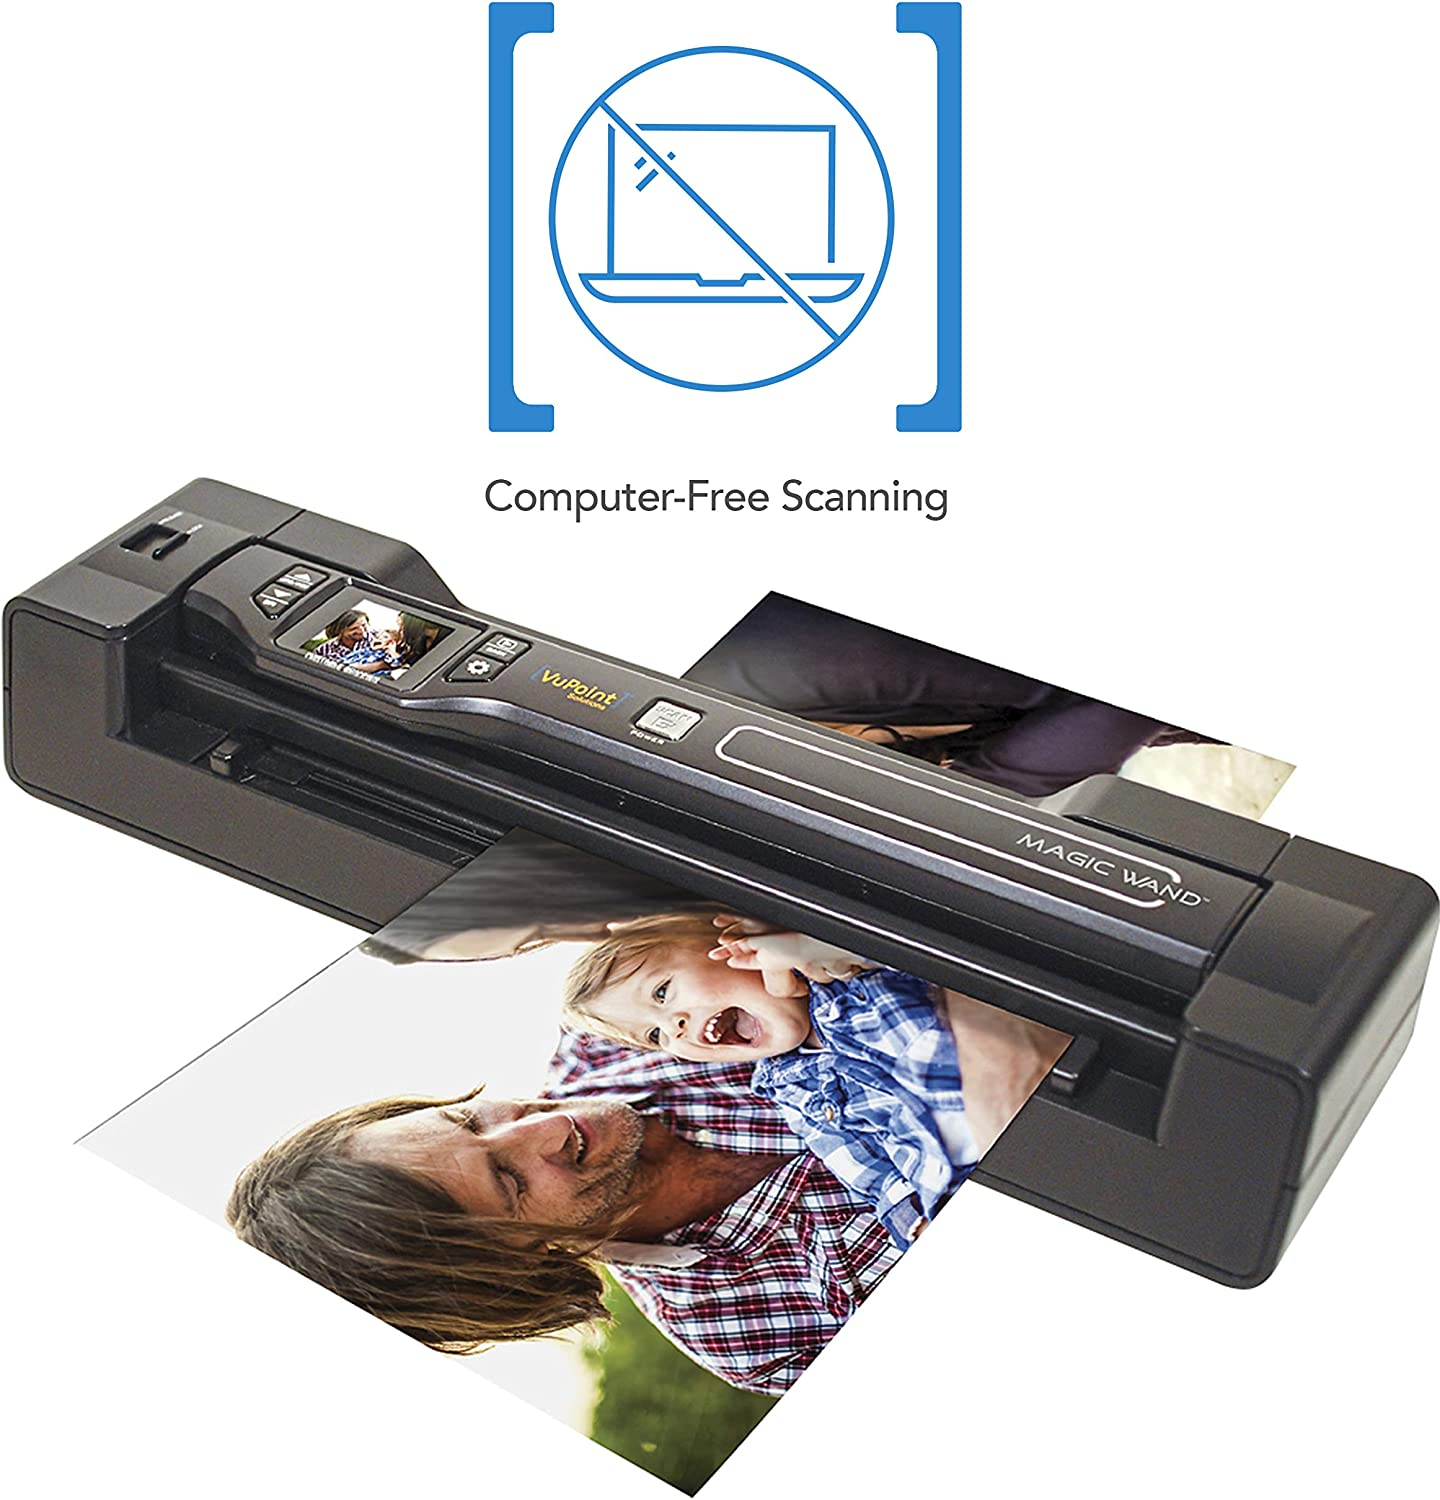 Vupoint ST470 Magic Wand Portable Scanner with Auto-Feed Docking Station 1.5 LCD PDF//JPEG 8gb MicroSD Card Document for Photo 1200dpi Receipt Hard Protective Travel Carrying Case